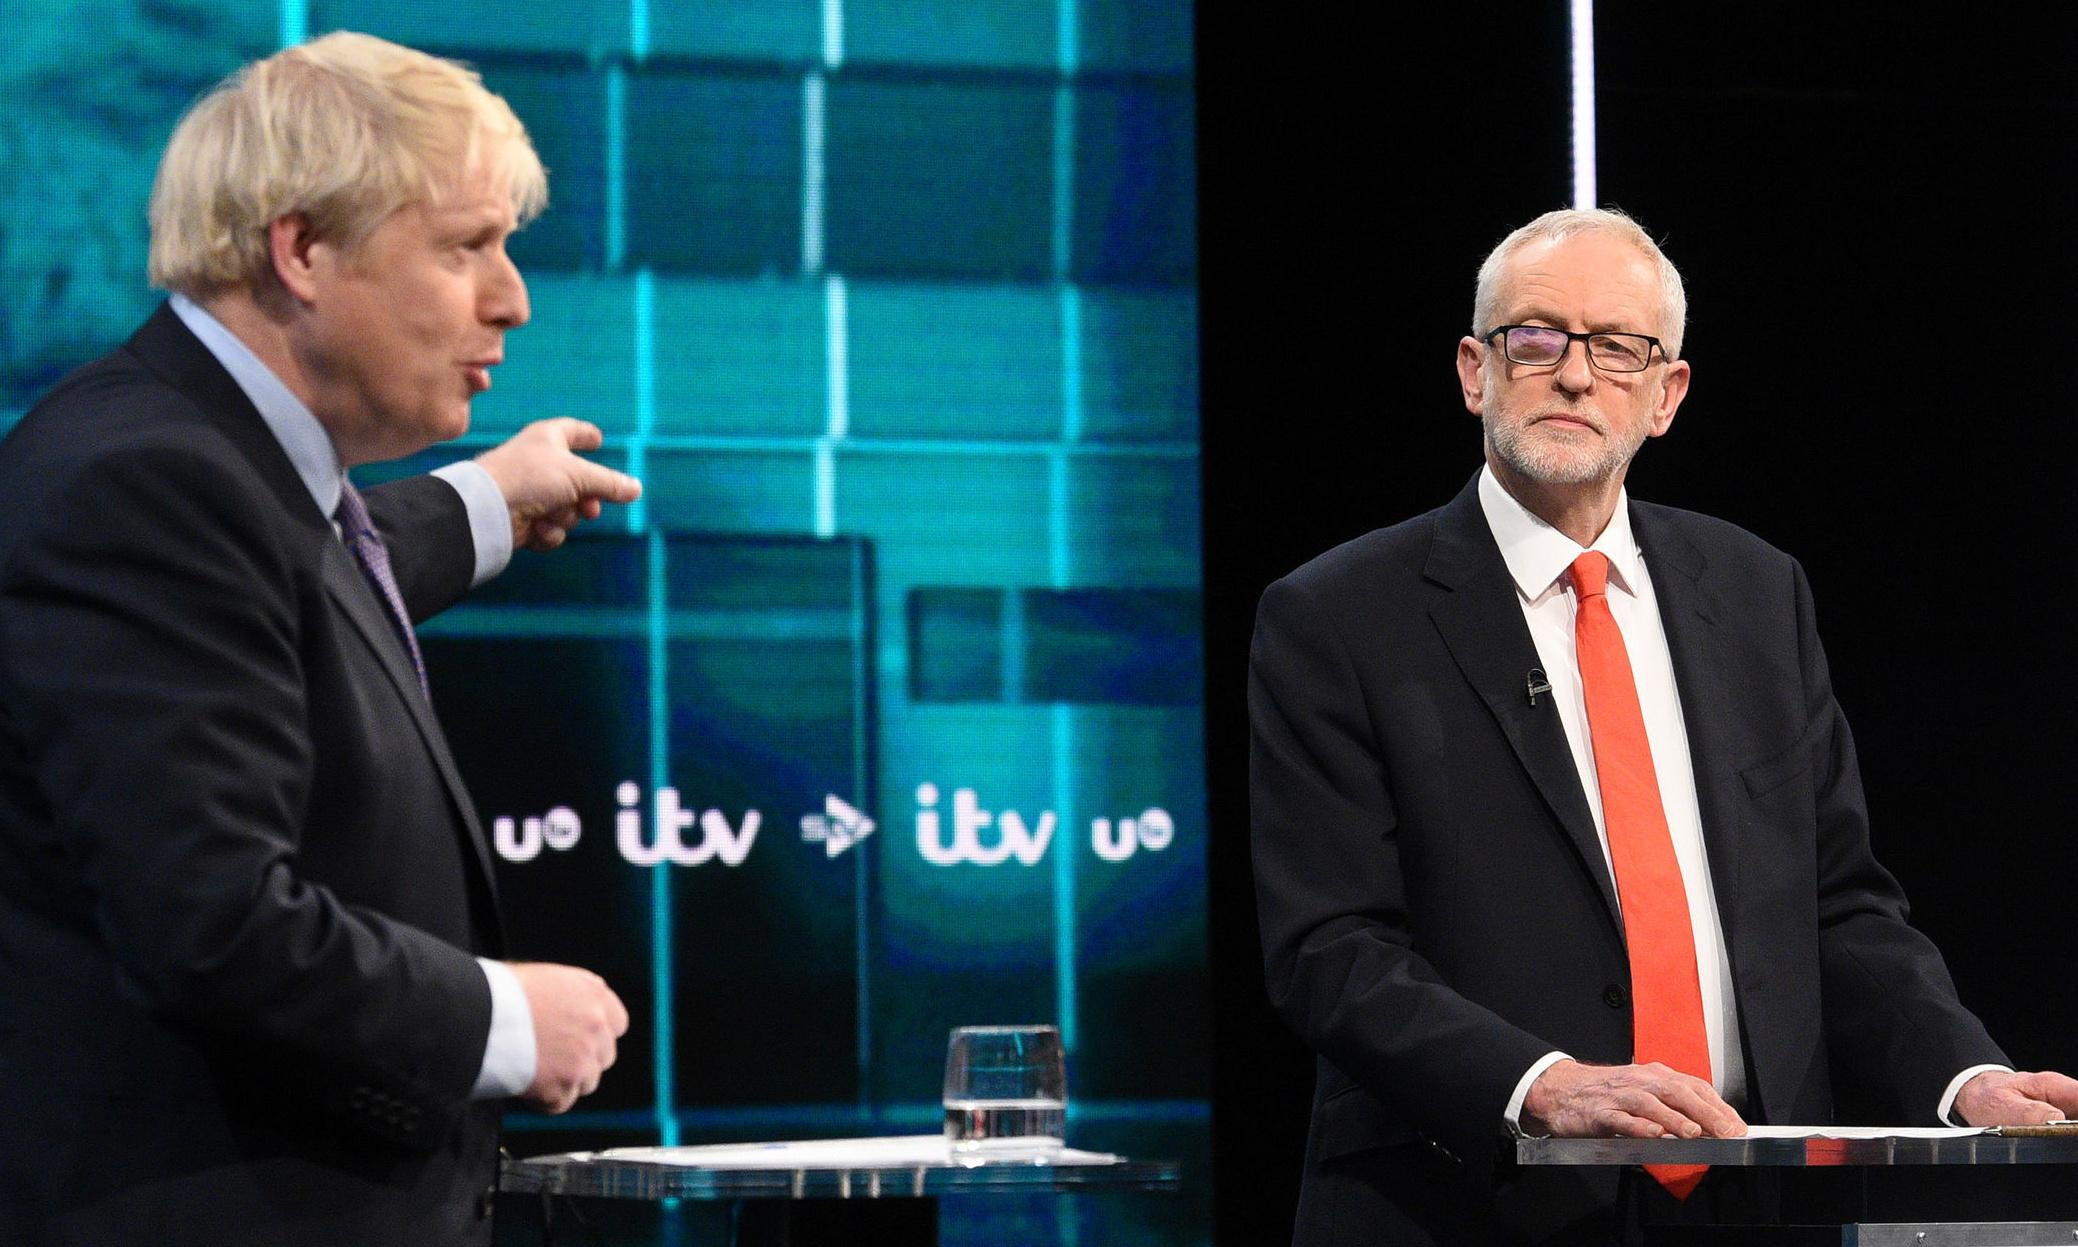 Johnson or Corbyn? Democracy is in trouble when we're obsessed with leaders